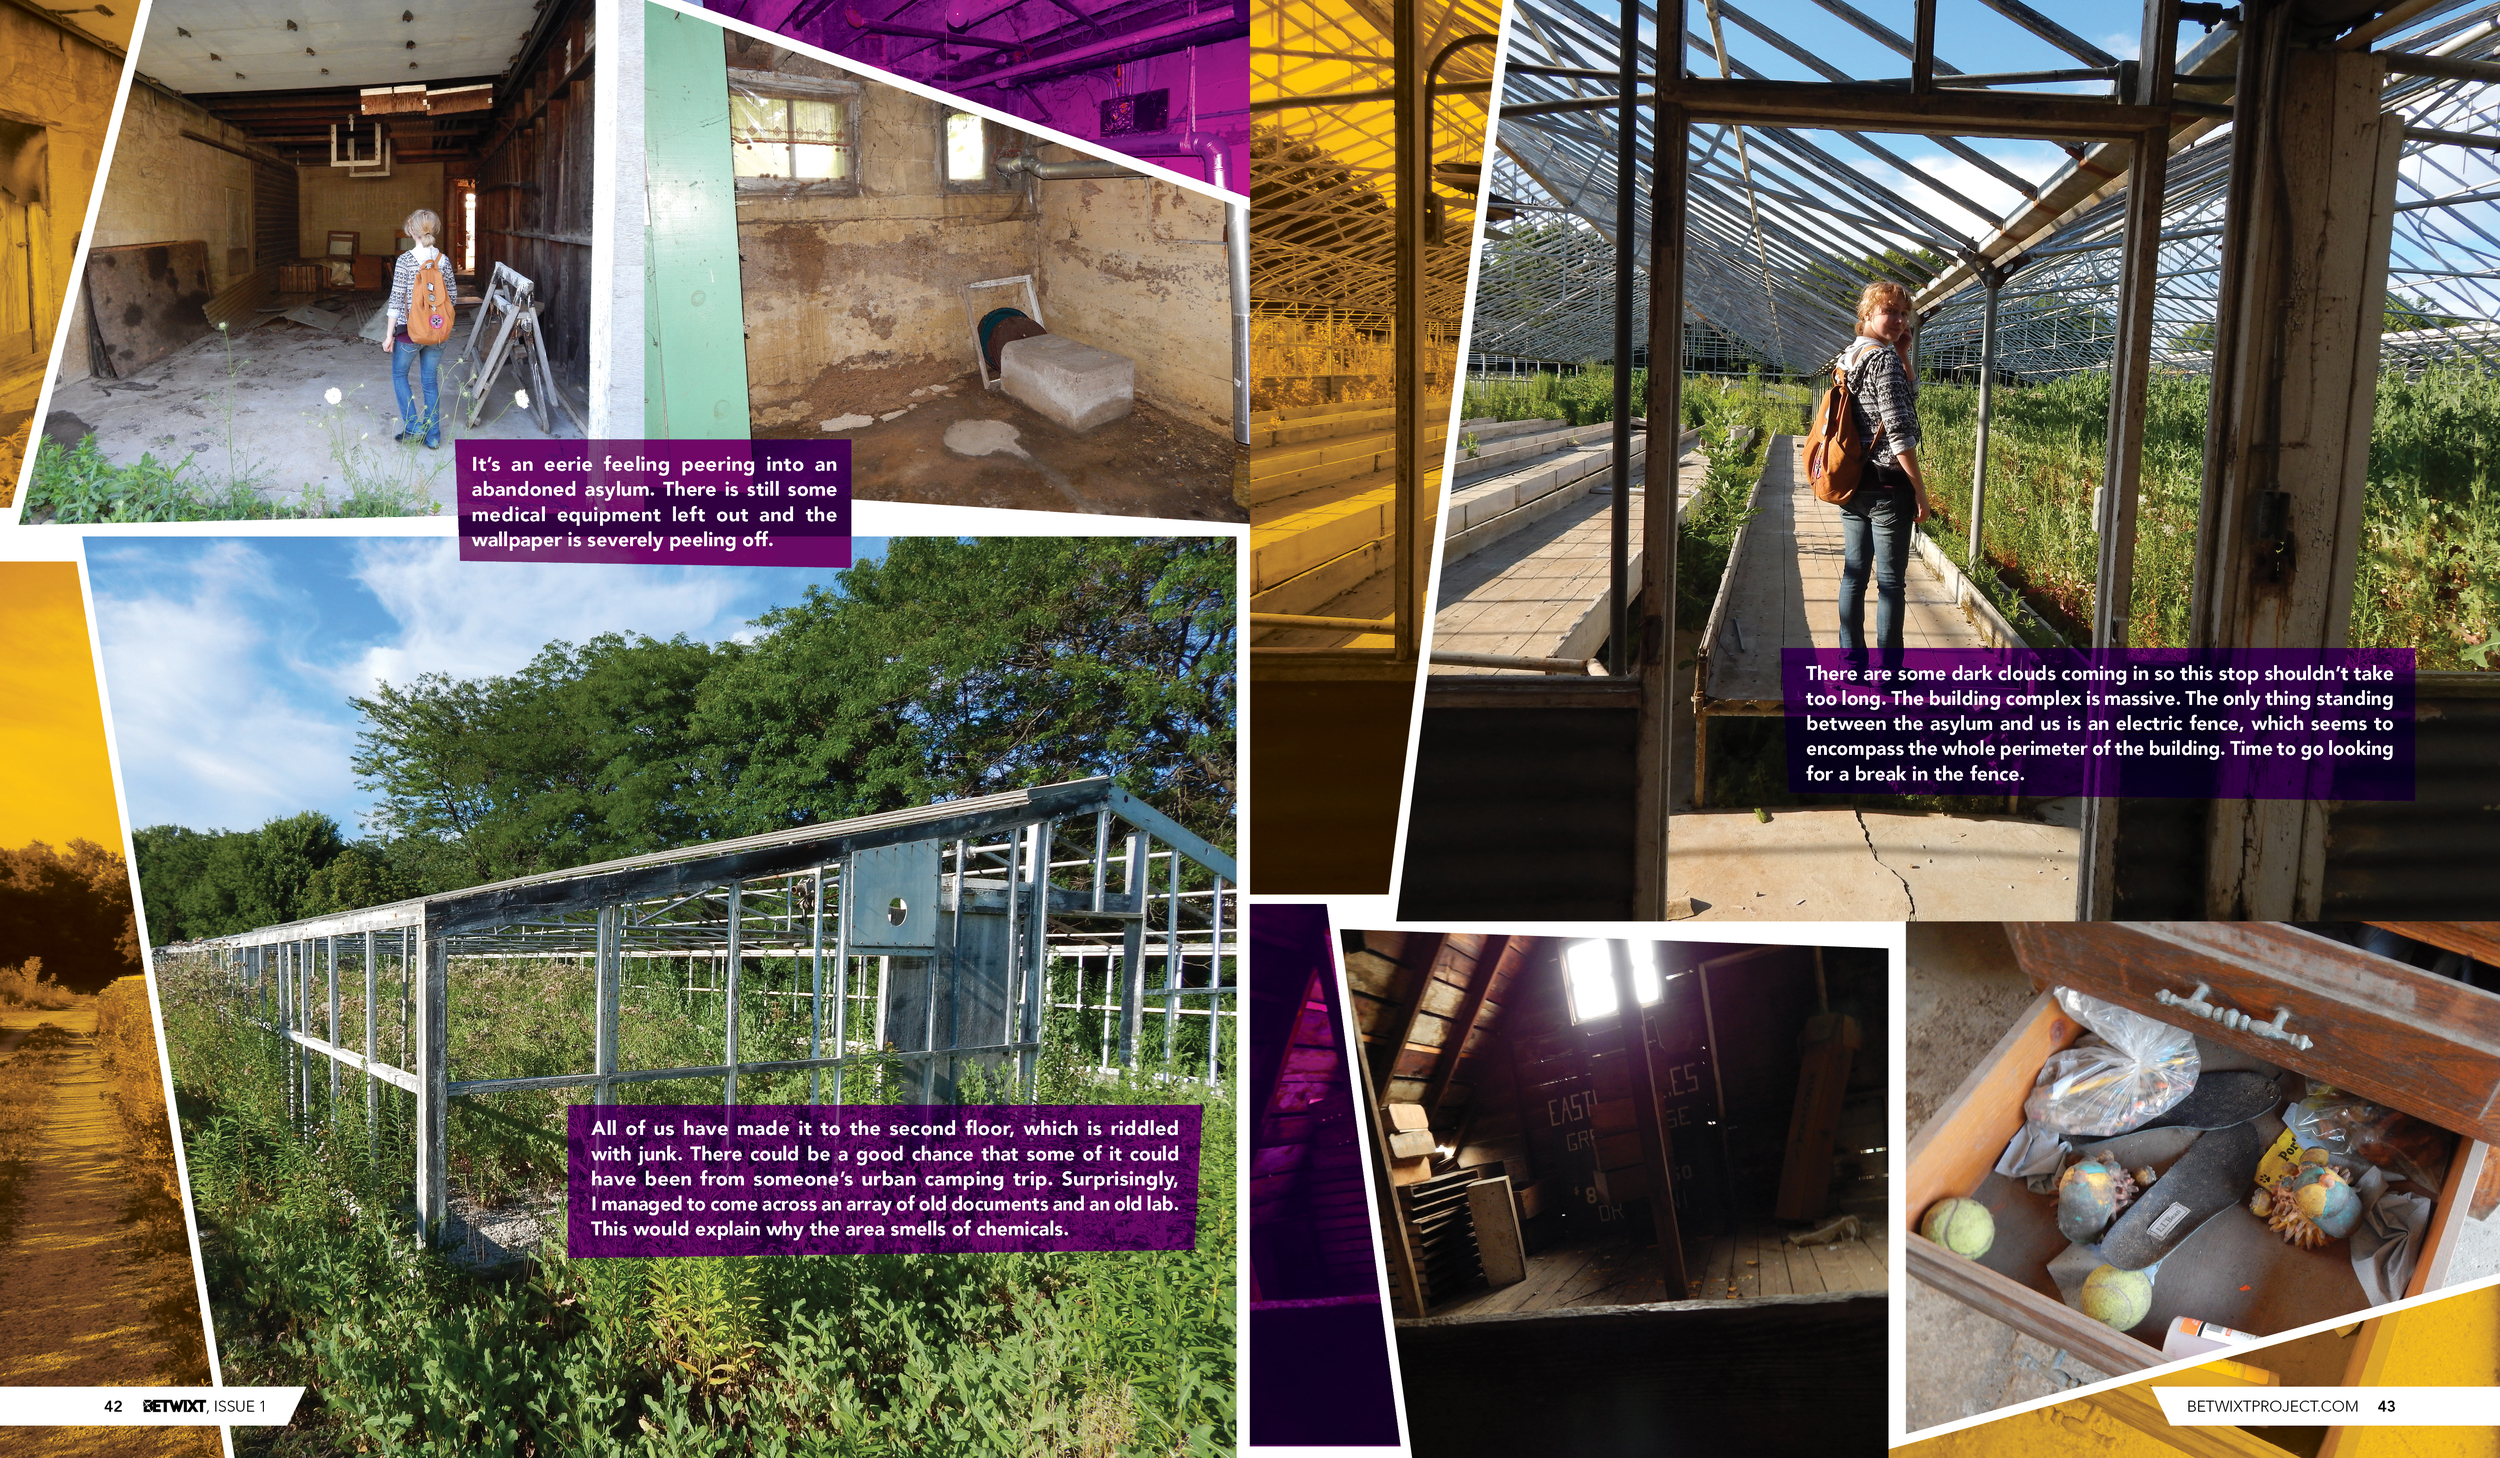 betwixt spreads for the interewebs22.jpg